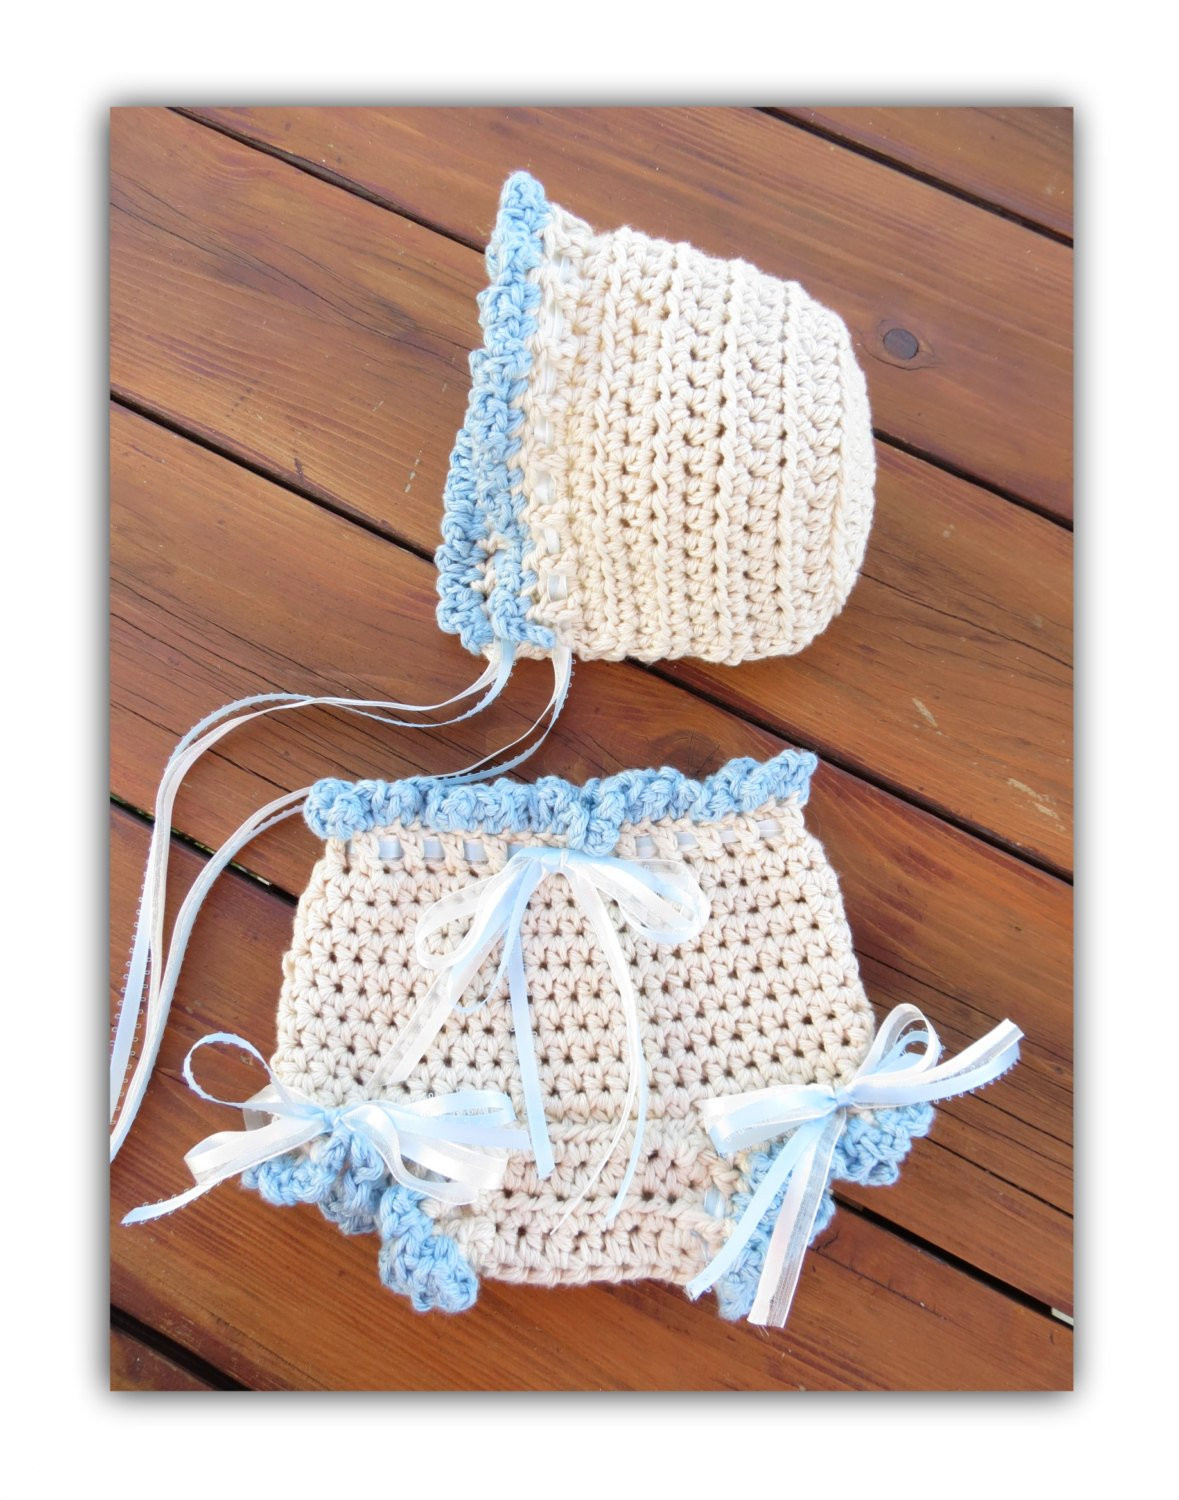 Elegant Crochet Diaper Cover Pattern Crochet Baby Hat Pattern Crochet Baby Diaper Cover Of Wonderful 48 Photos Crochet Baby Diaper Cover